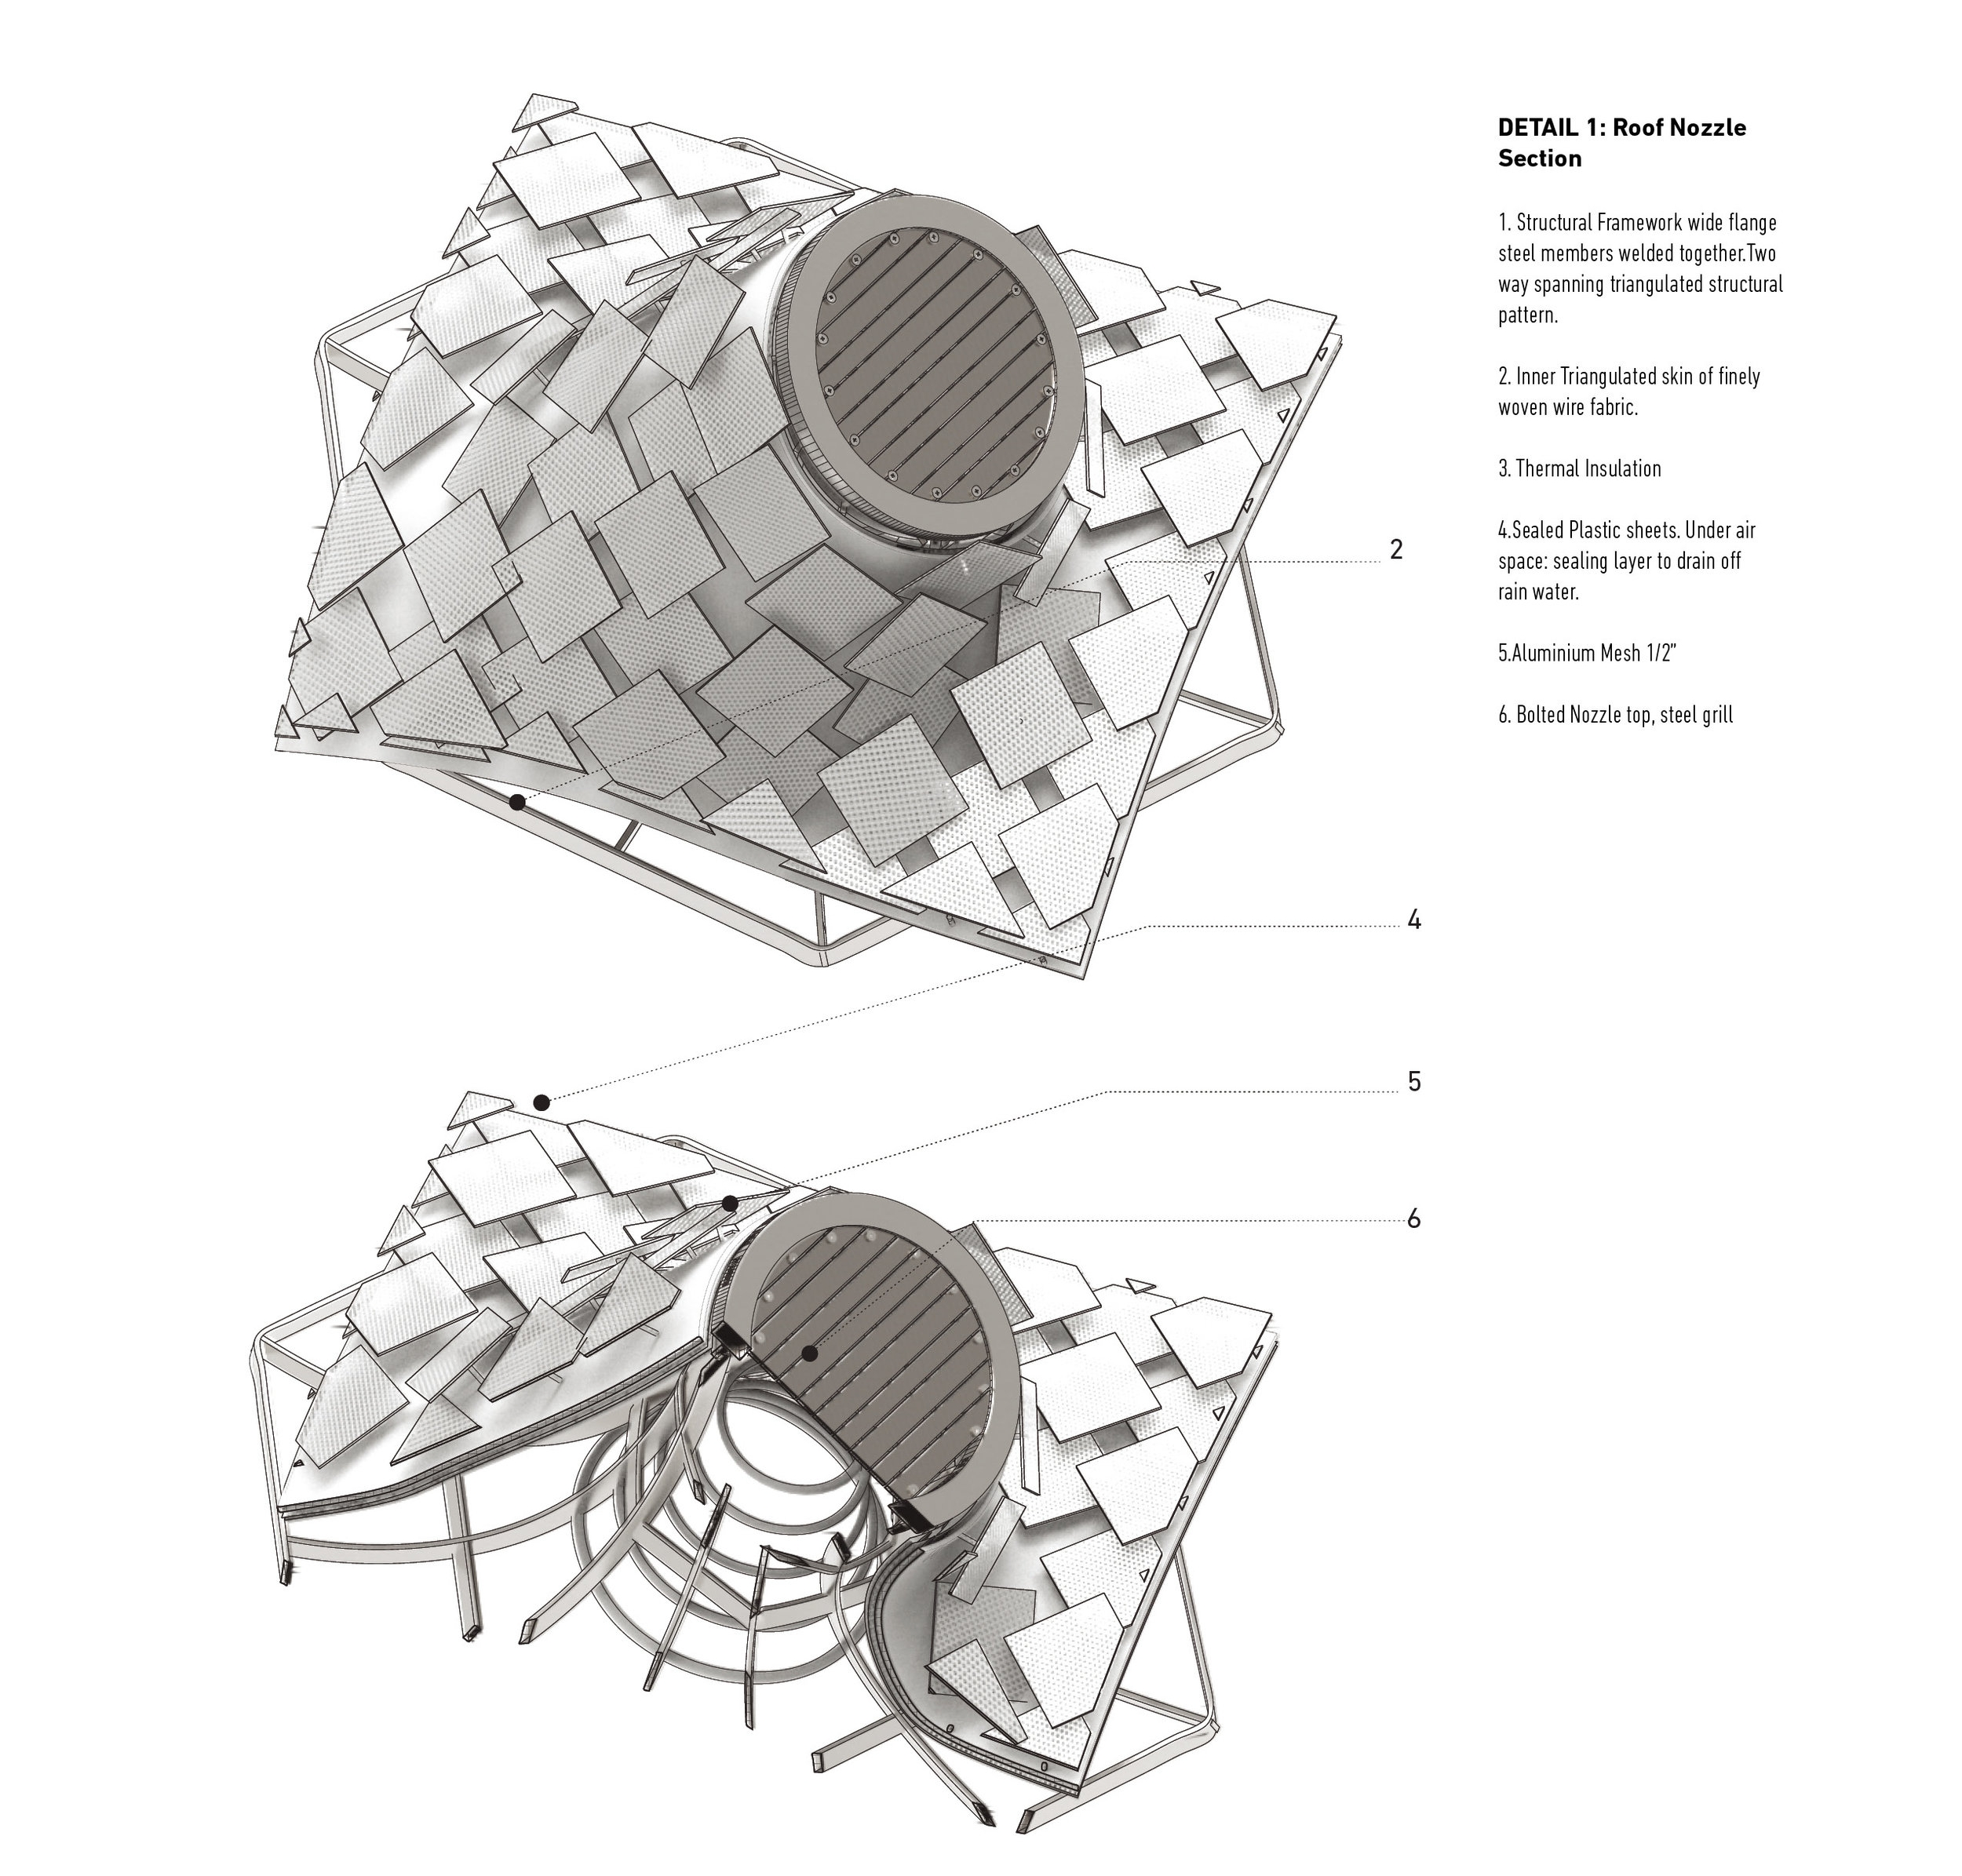 Transformed Detail-Roof Nozzle